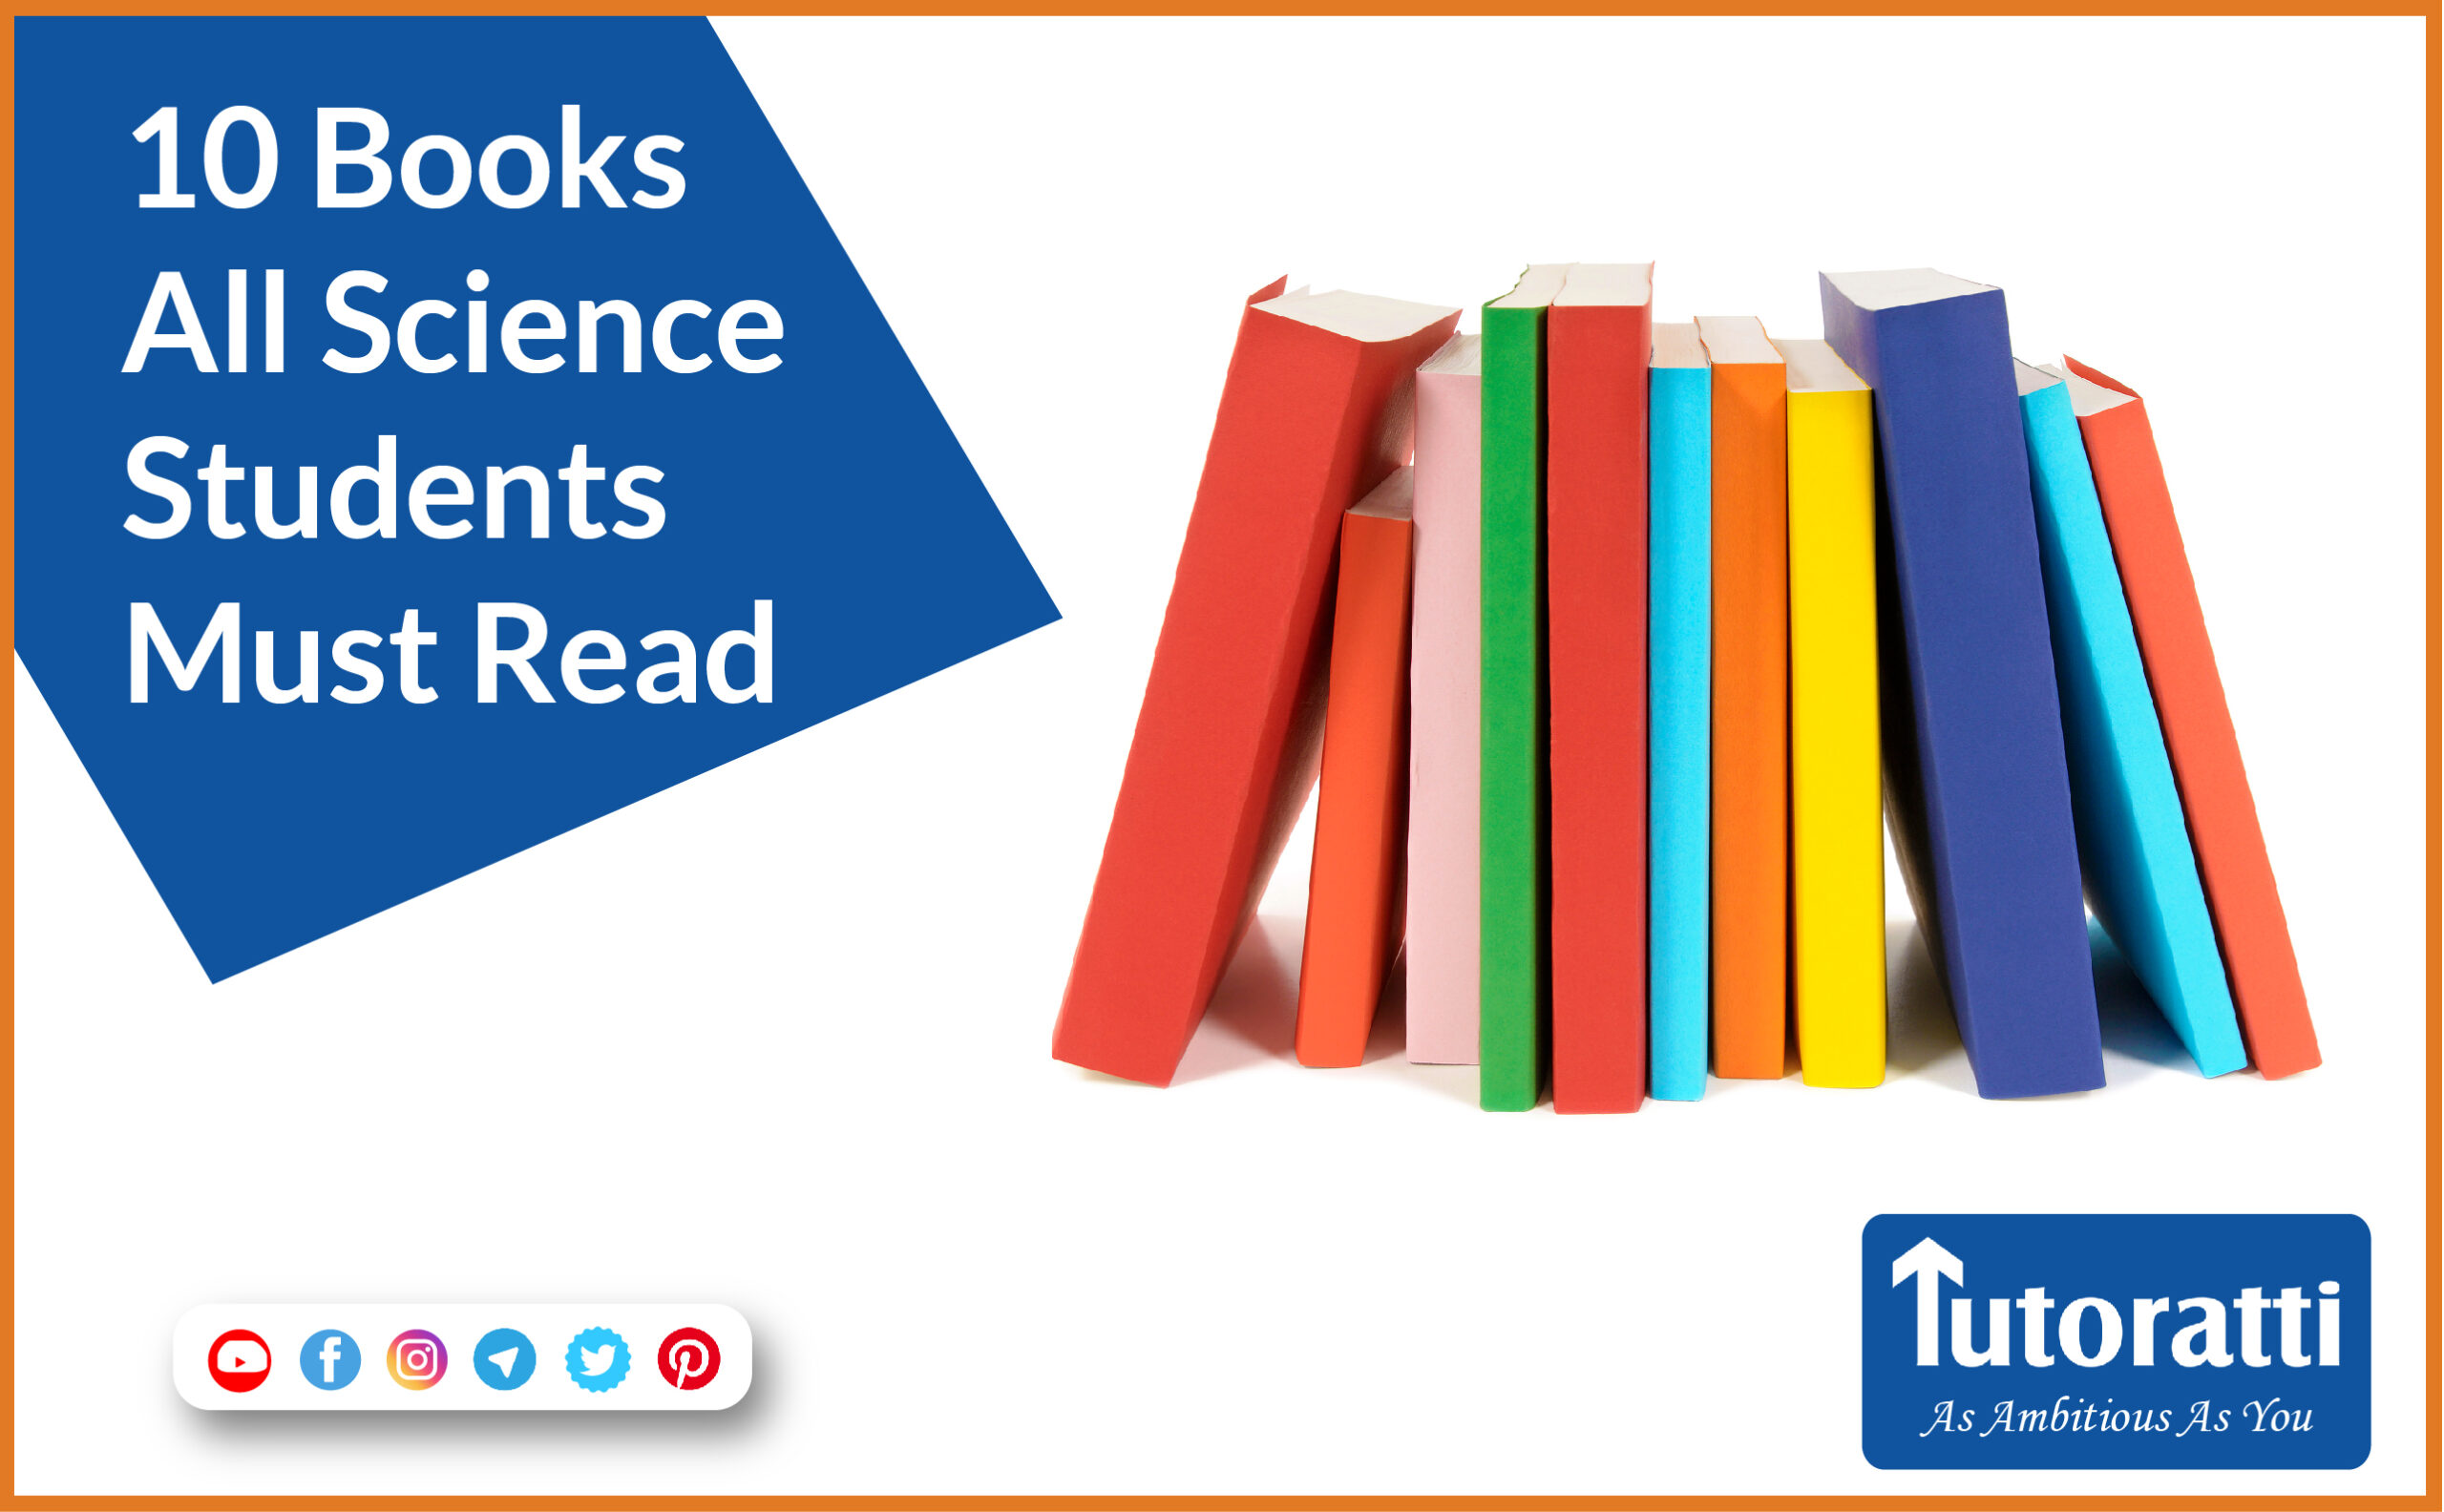 10 Books All Science Students Must Read